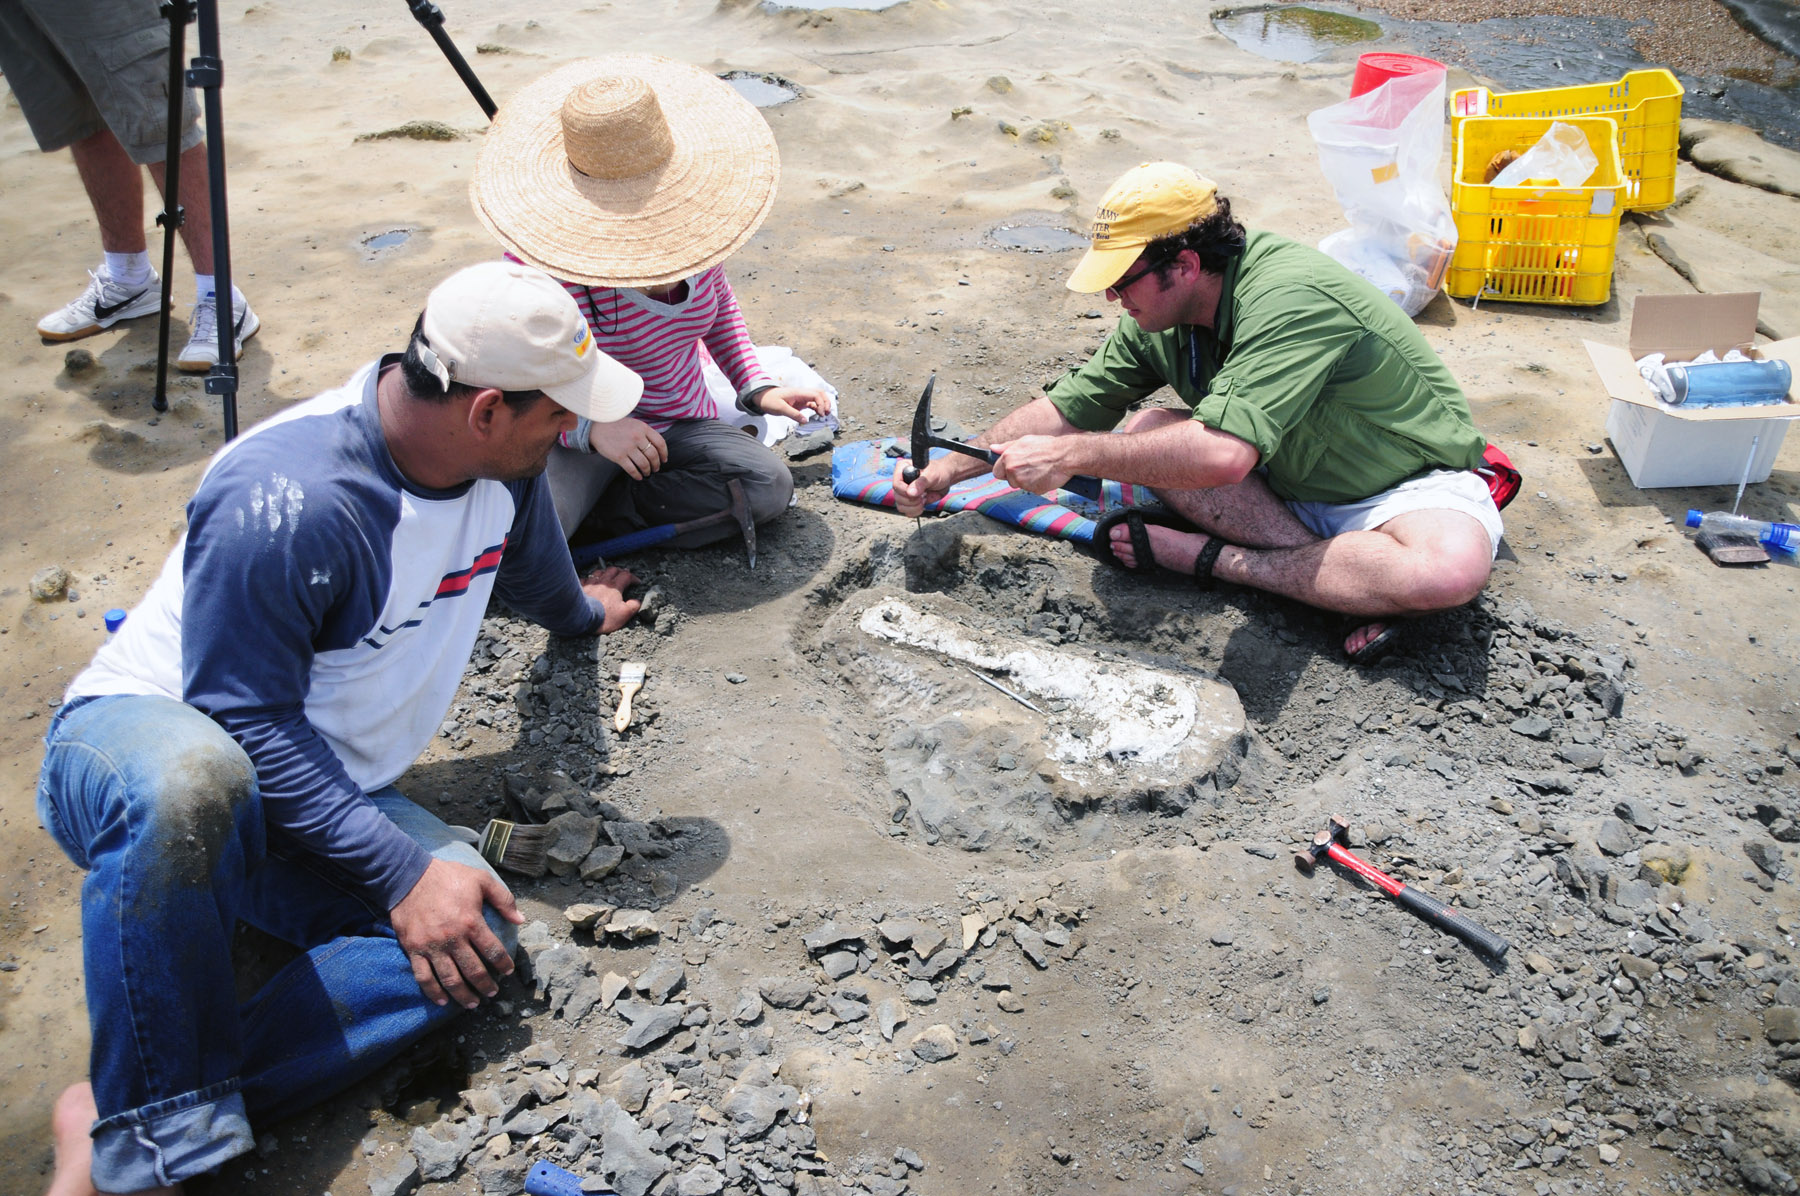 Smithsonian Scientists Dig a Trench Around a squalodontid Skull<div class='credit'><strong>Credit:</strong> Smithsonian Scientists Dig a Trench Around a squalodontid Skull</div>